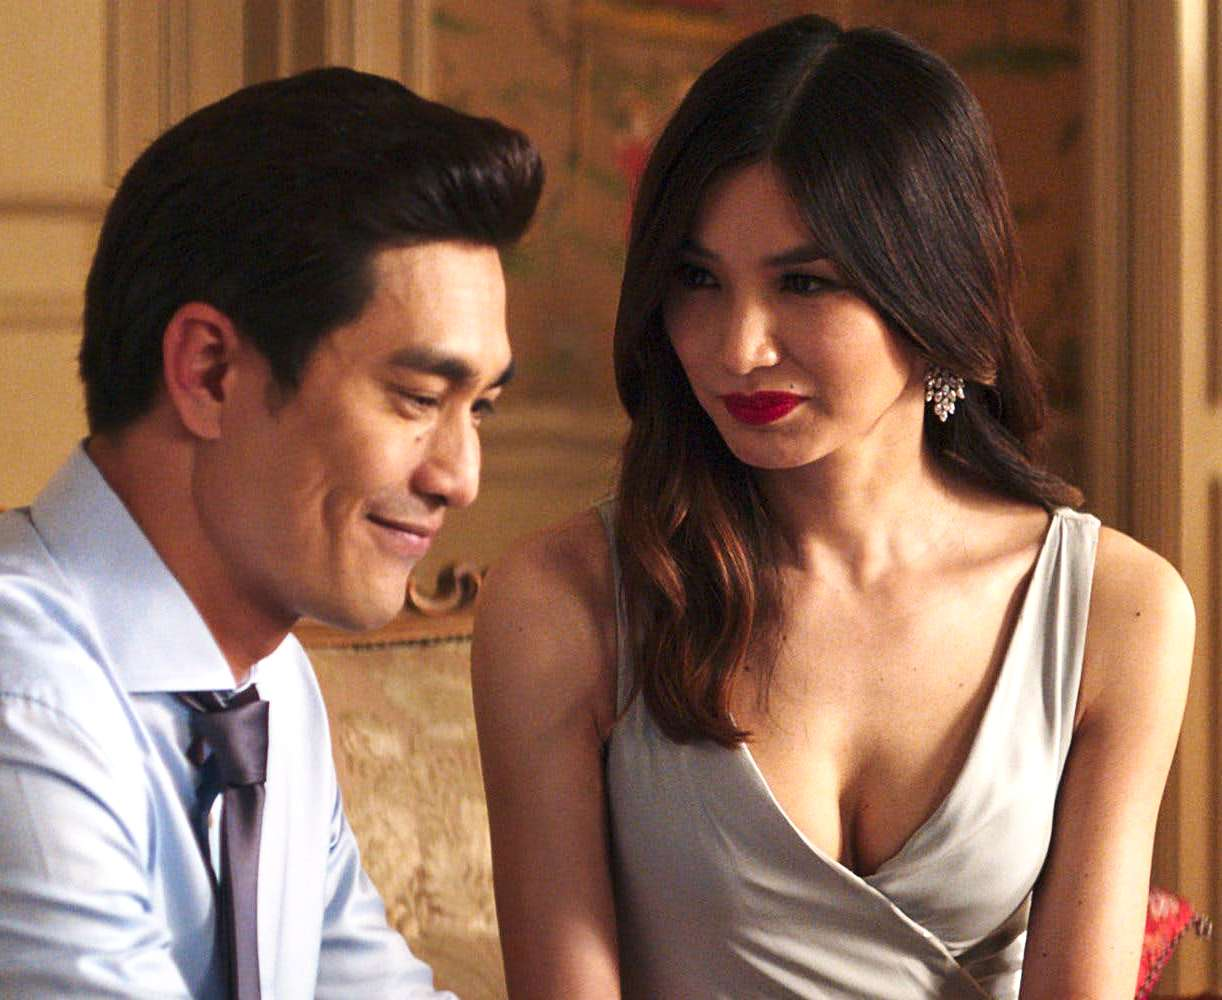 Michael Teo (Pierre Png) and Nick's cousin Astrid (Gemma Chan) in Crazy Rich Asians